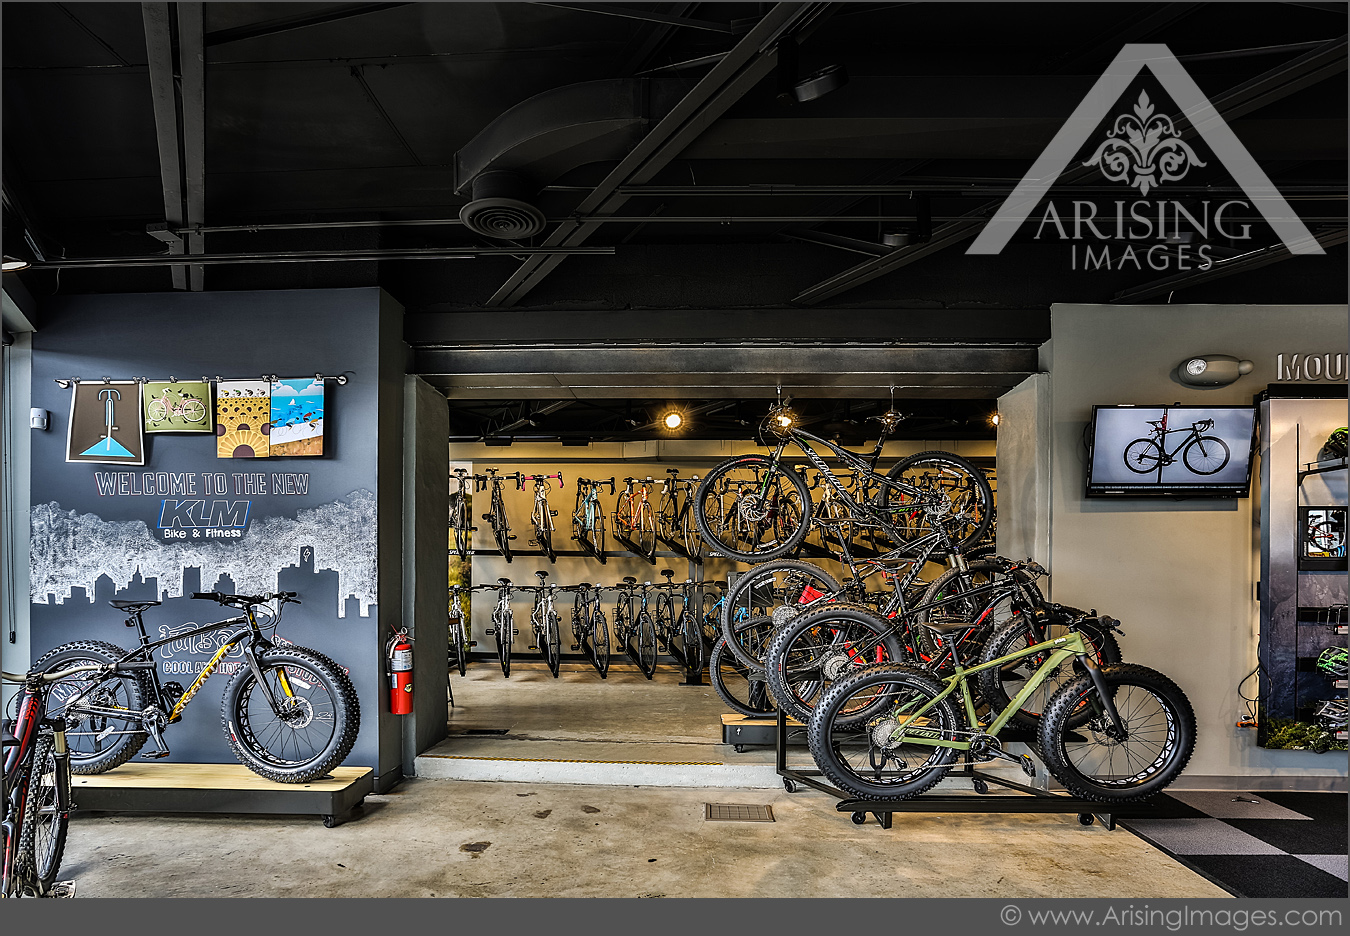 klm bike and fitness in rochester hills michigan